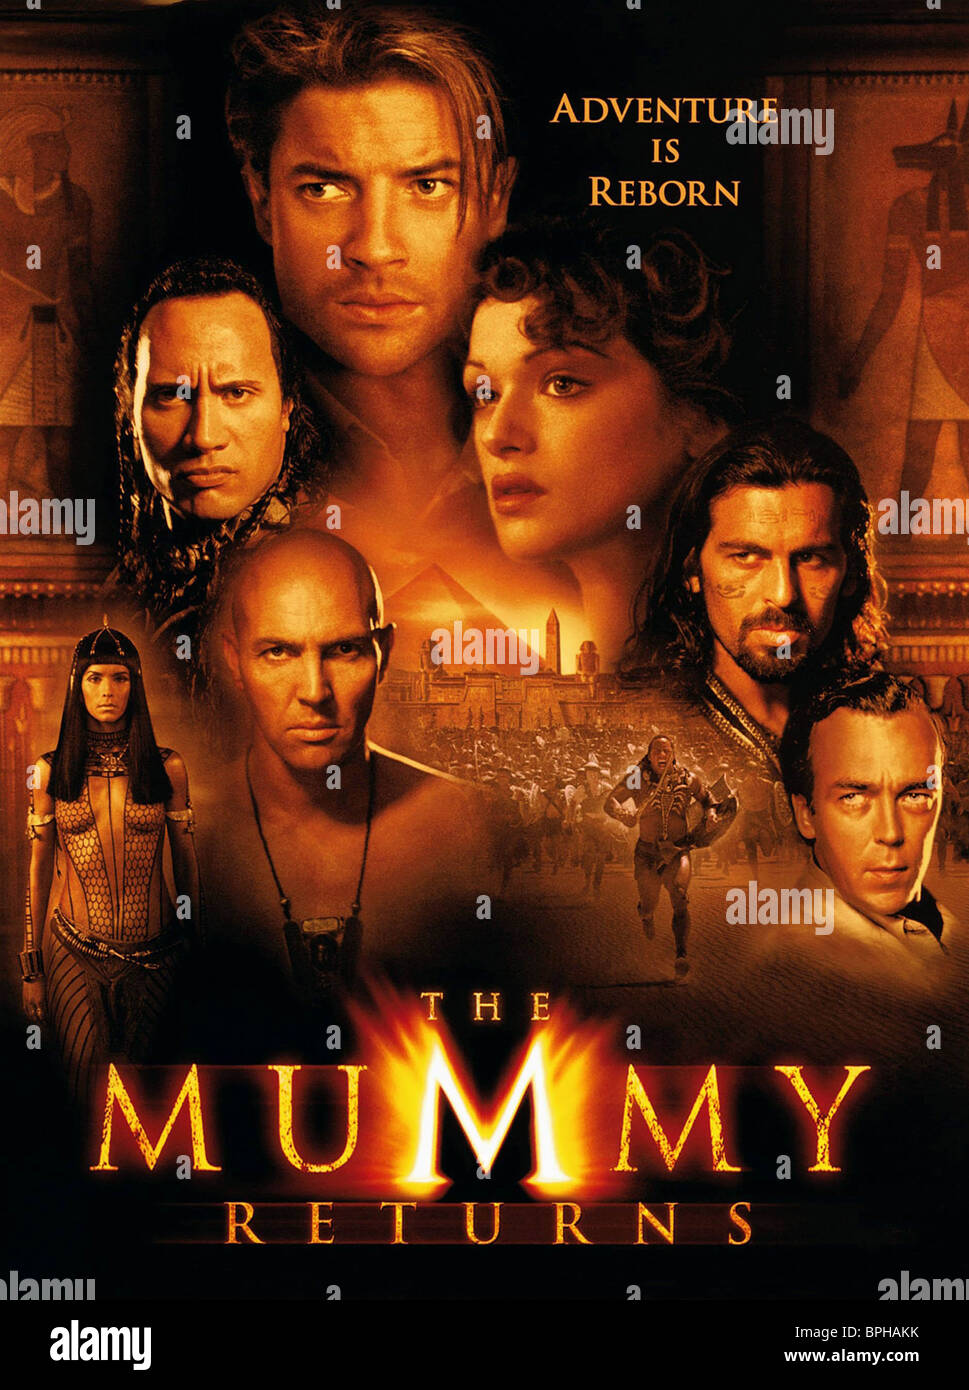 The Mummy Returns Rachel Weisz High Resolution Stock Photography And Images Alamy